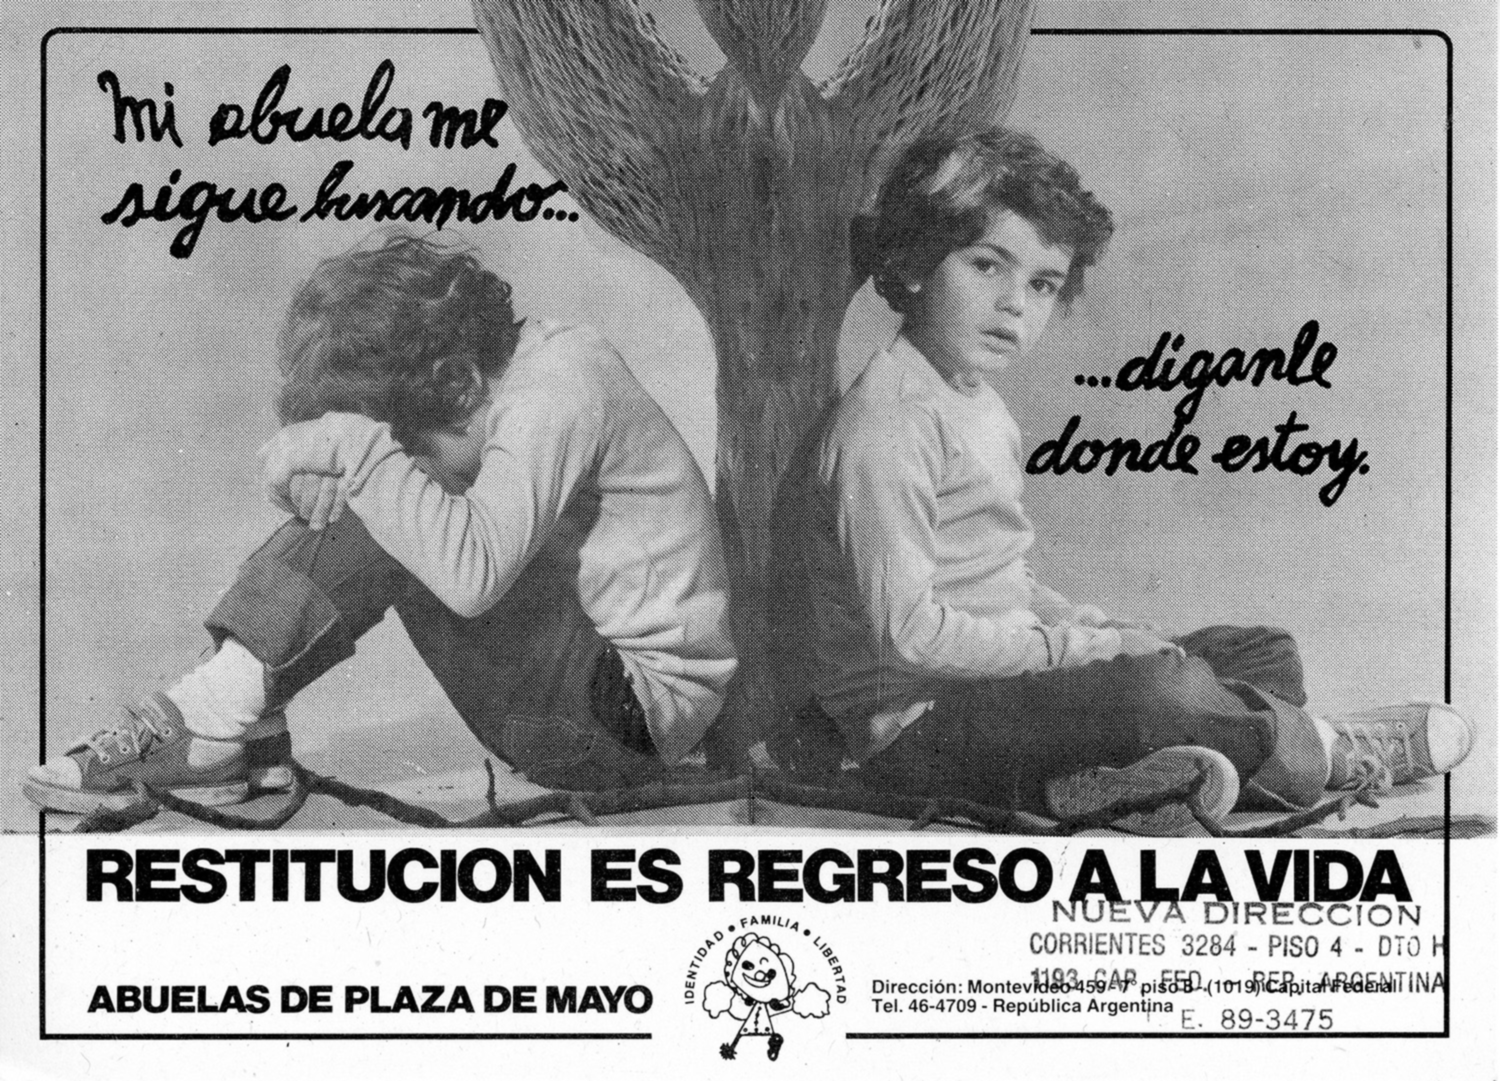 1986 Flyer by the Abuelas de Plaza de Mayo